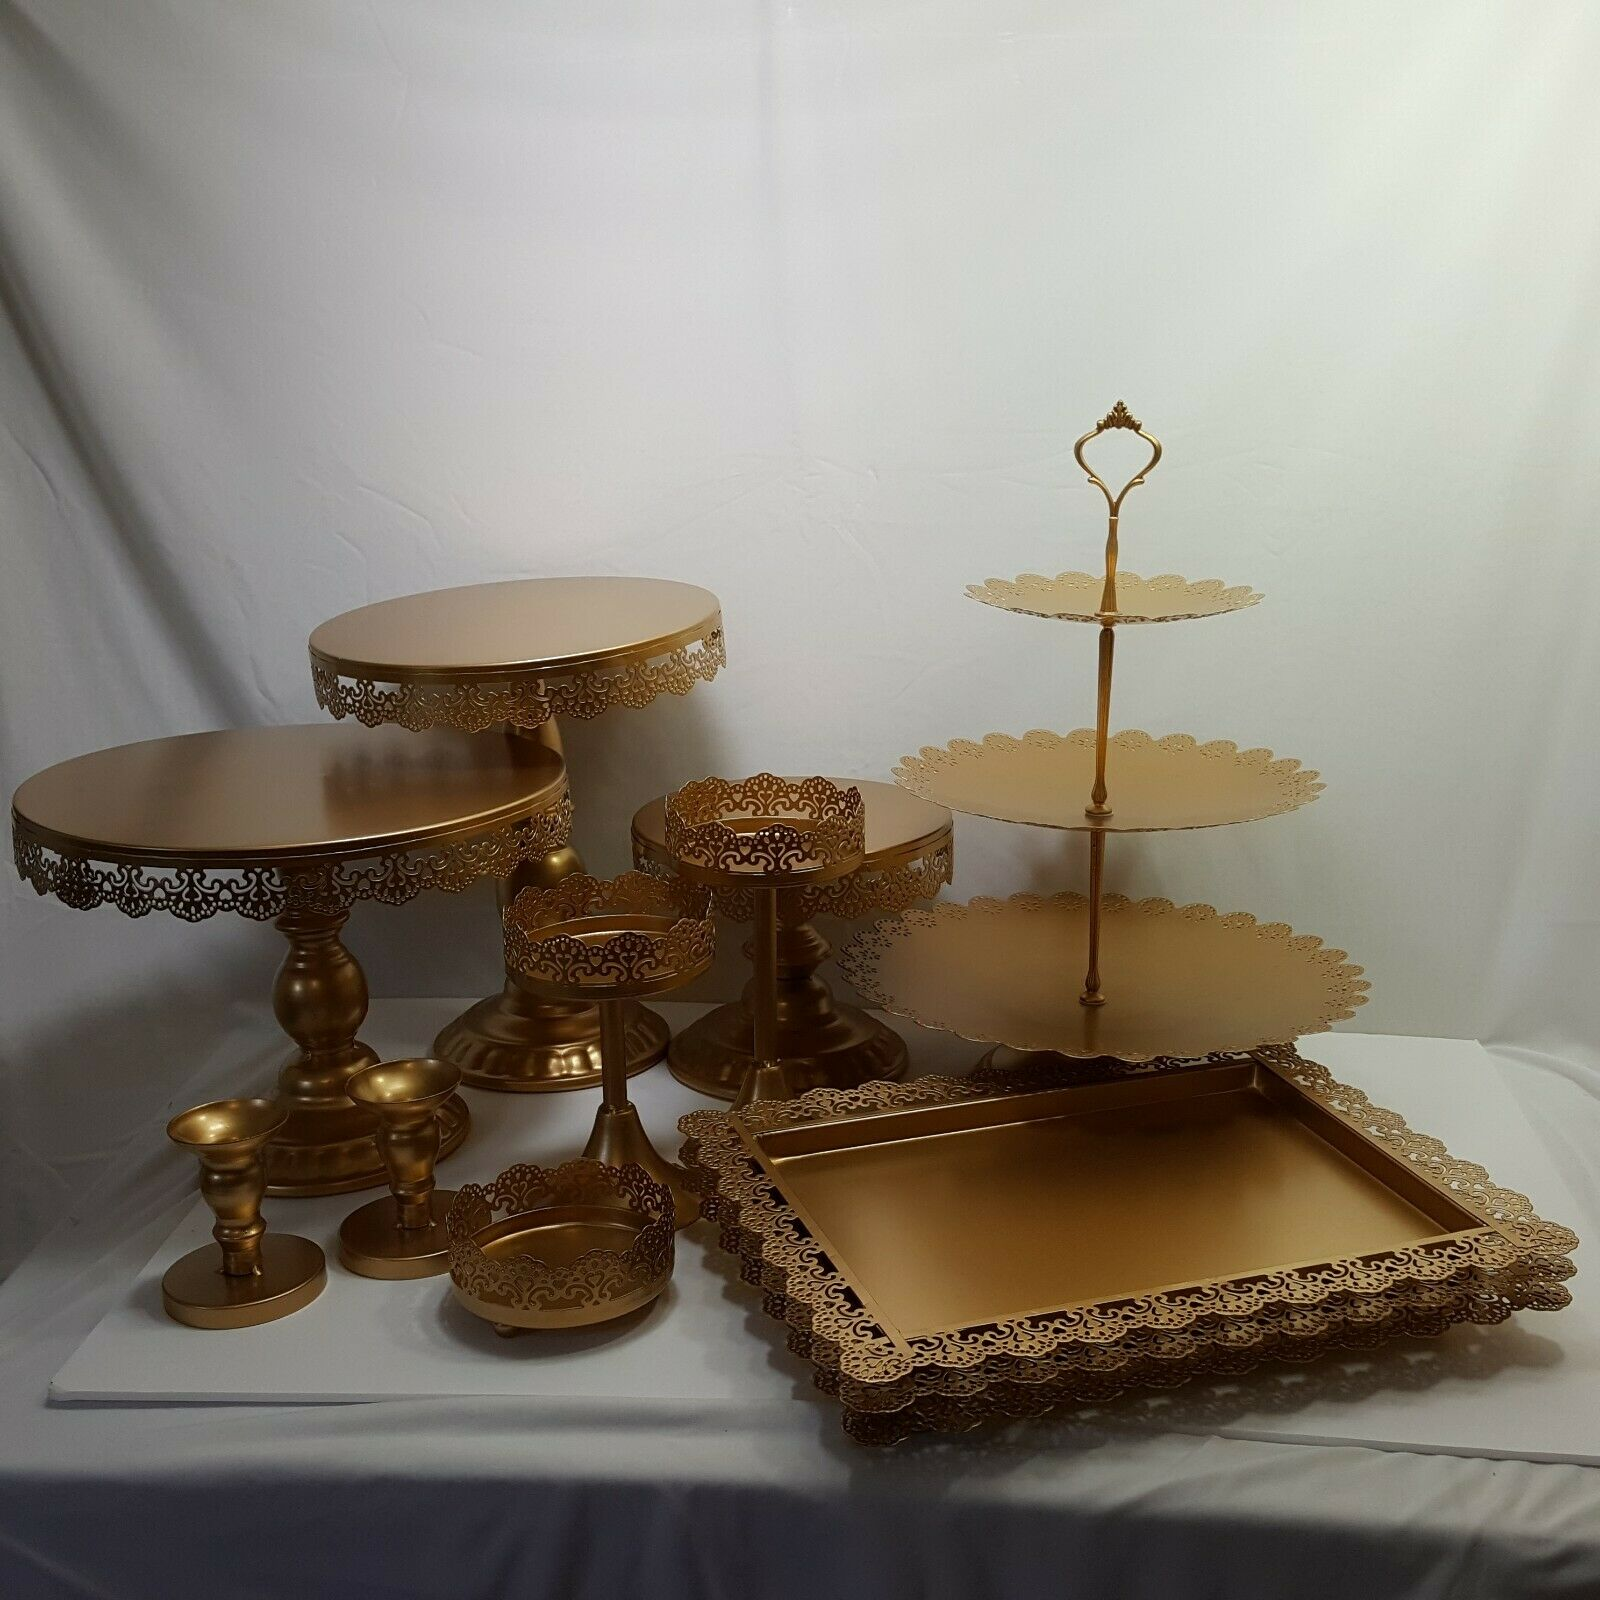 12 Piece Gold Metal Cake Candle Holder Serving Trays Wedding